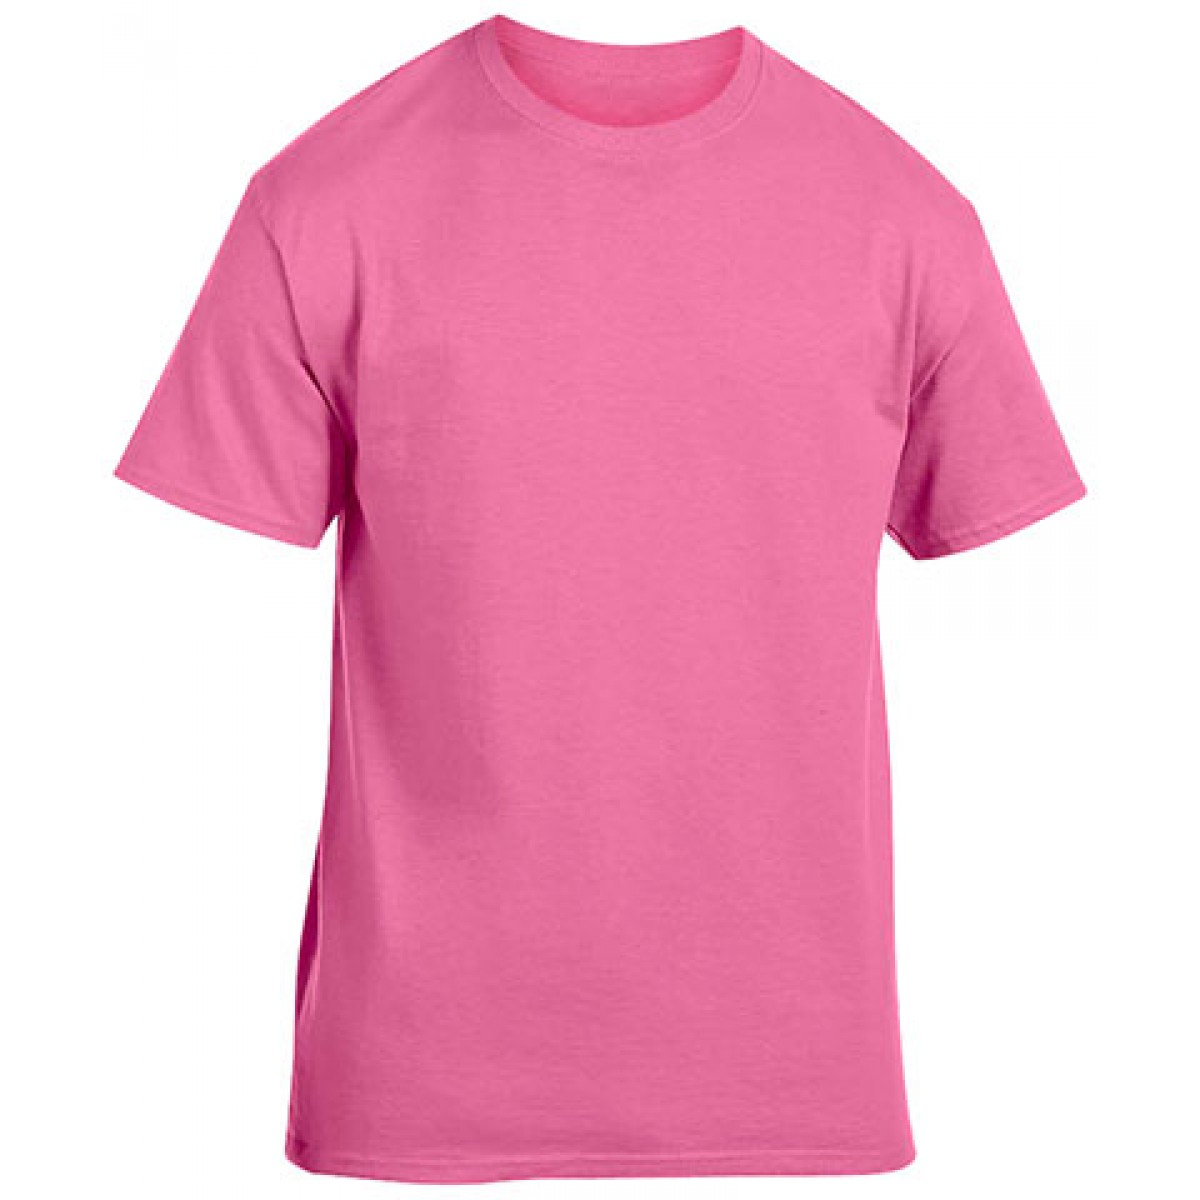 Cotton Short Sleeve T-Shirt-Safety Pink-YL